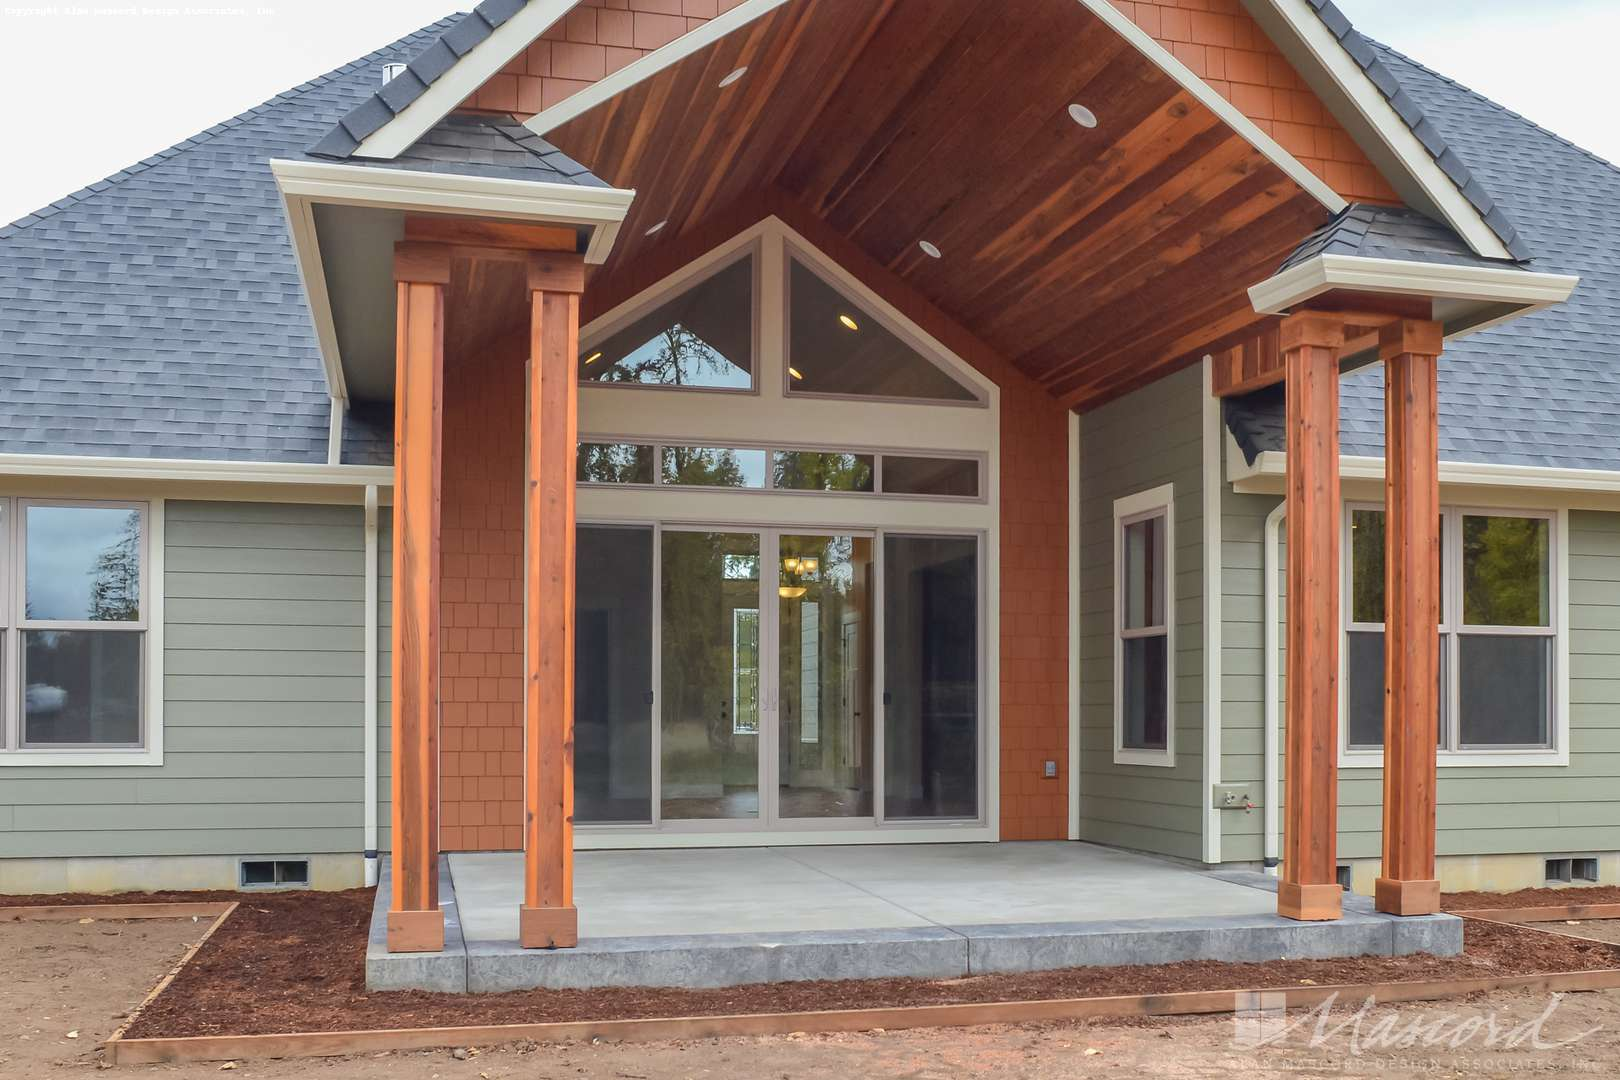 Craftsman House Plan 1248 The Ripley 2233 Sqft 3 Beds 2